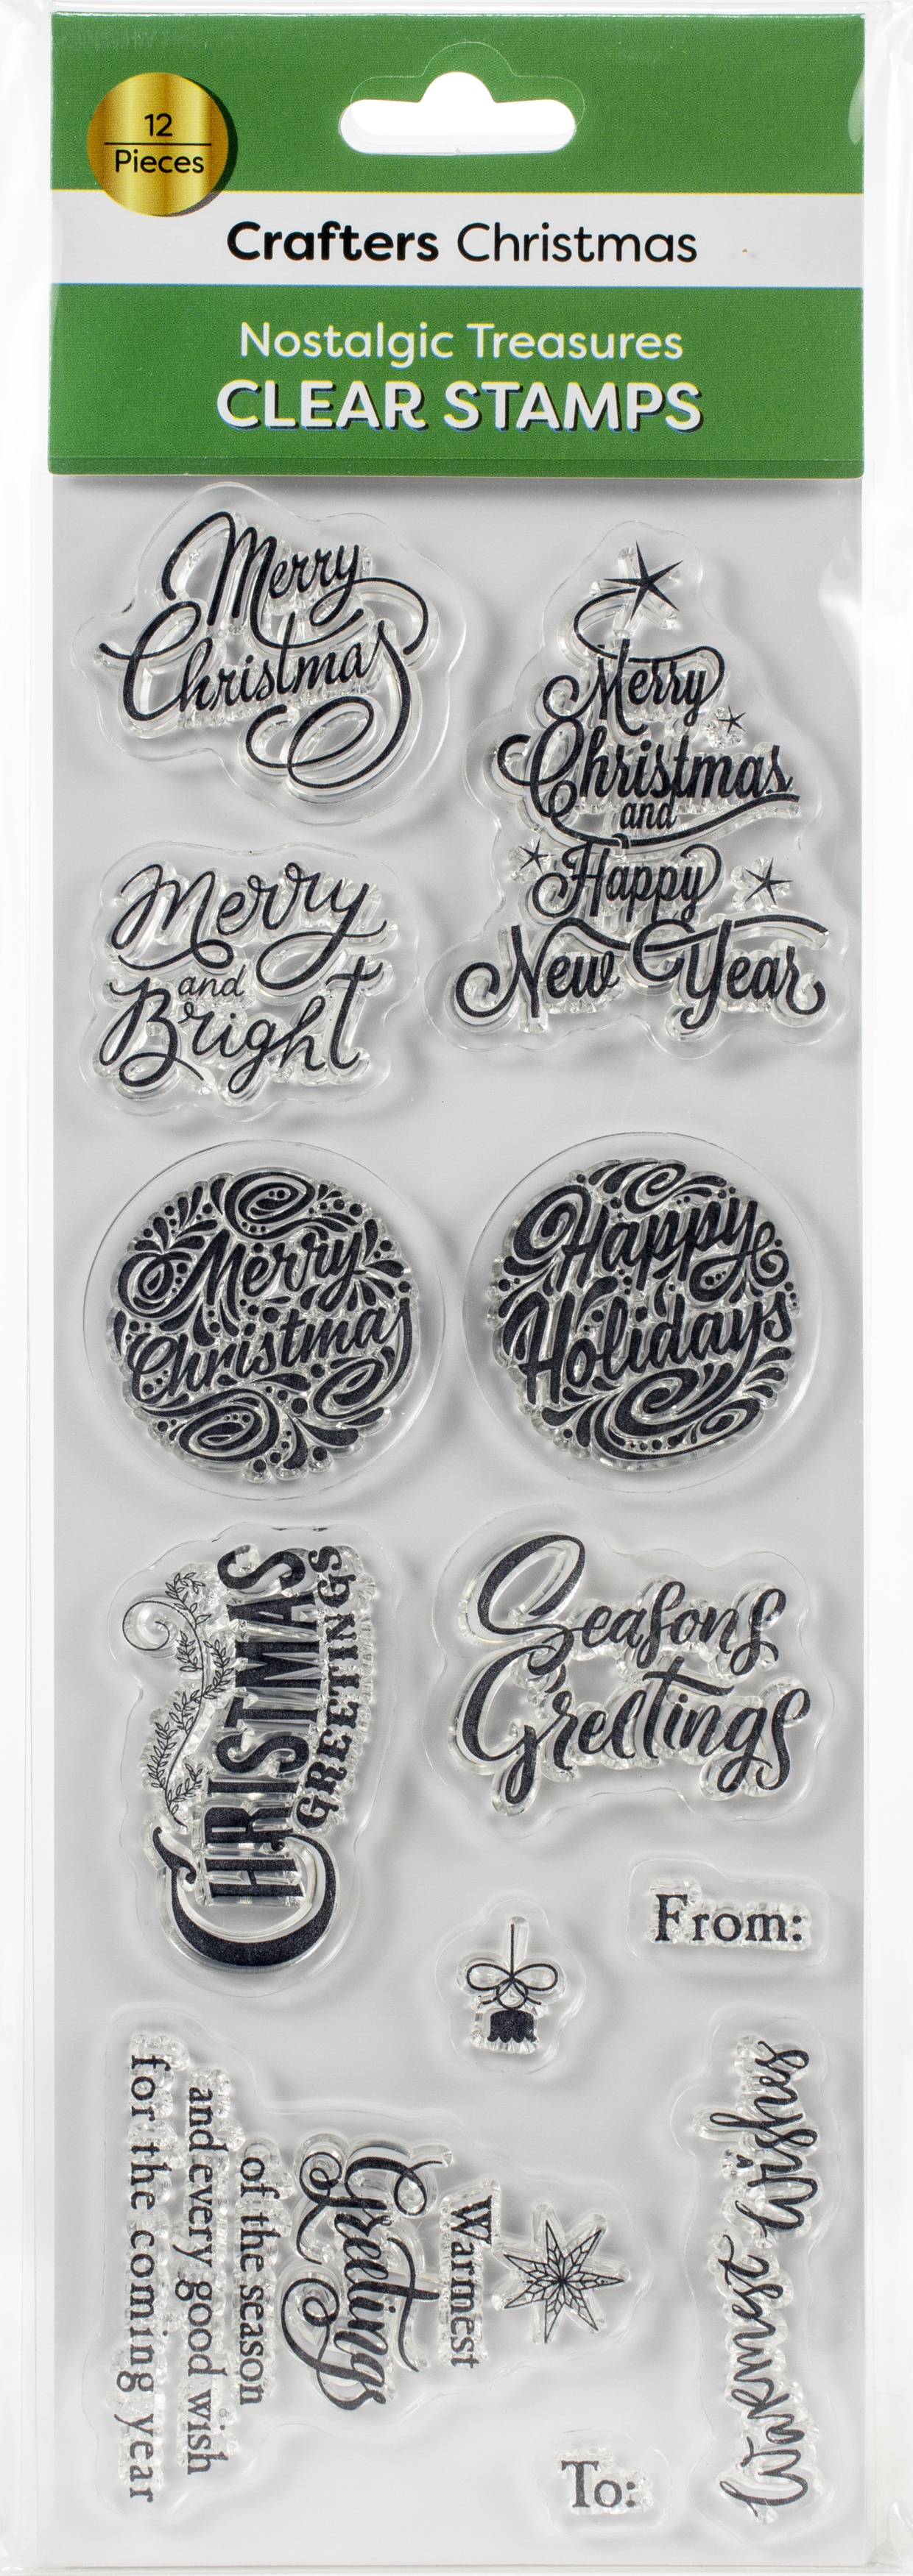 Crafters Christmas Clear Stamps-Nostalgic Treasures Sentiments